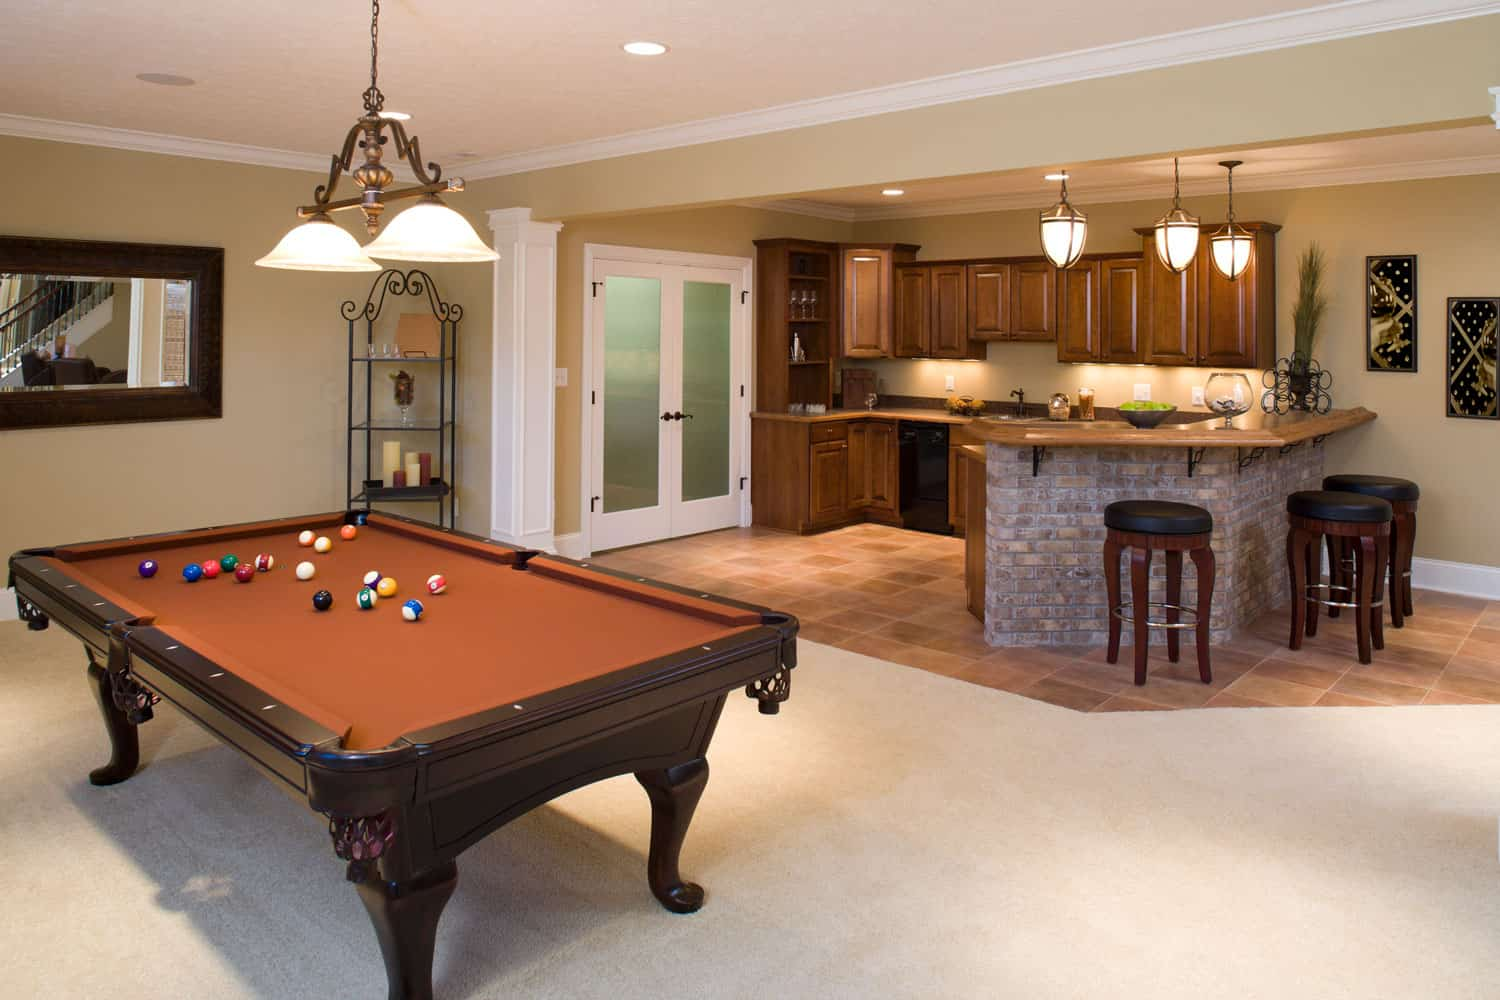 Recently finished residential lower level game room and bar with pool table and stools